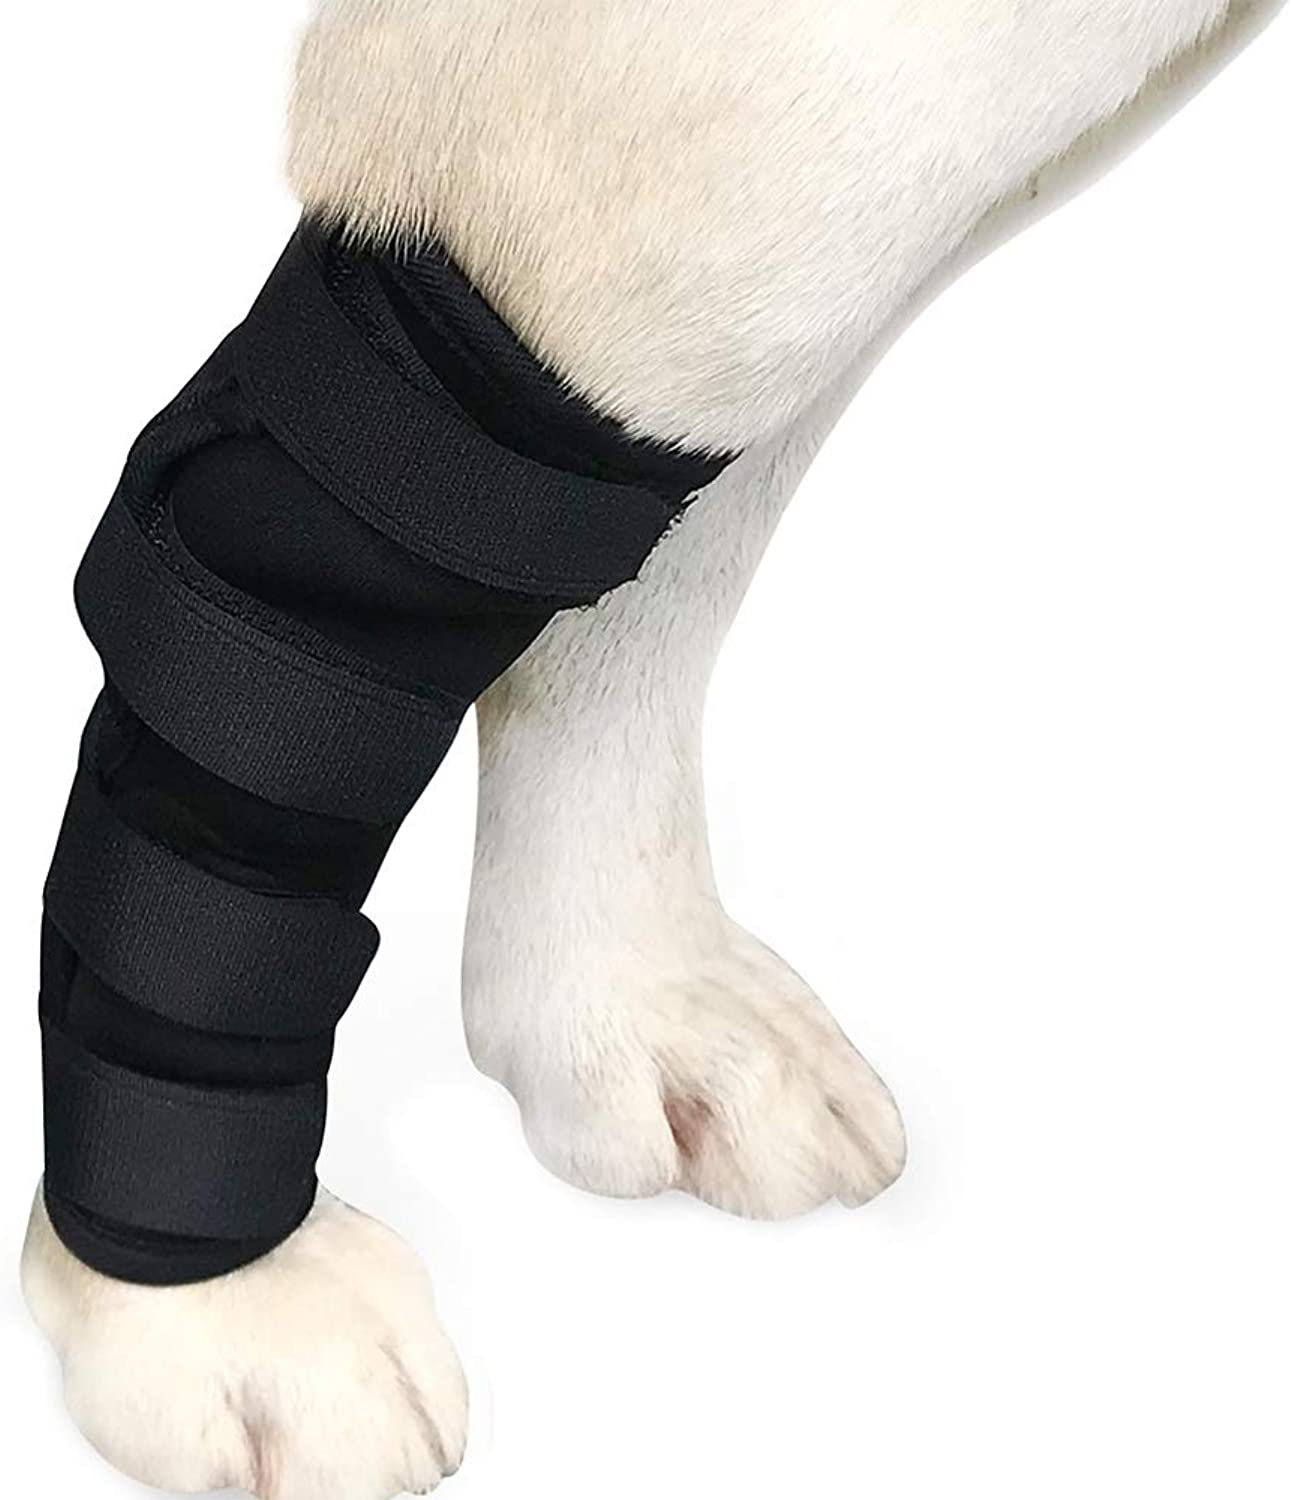 Albabara Dog Leg Brace, Extra Supportive Dog Canine Rear Leg Hock Joint Wrap Predects Wounds as They Heal Compression Brace Heals and Prevents Injuries and Sprains Helps Arthritis